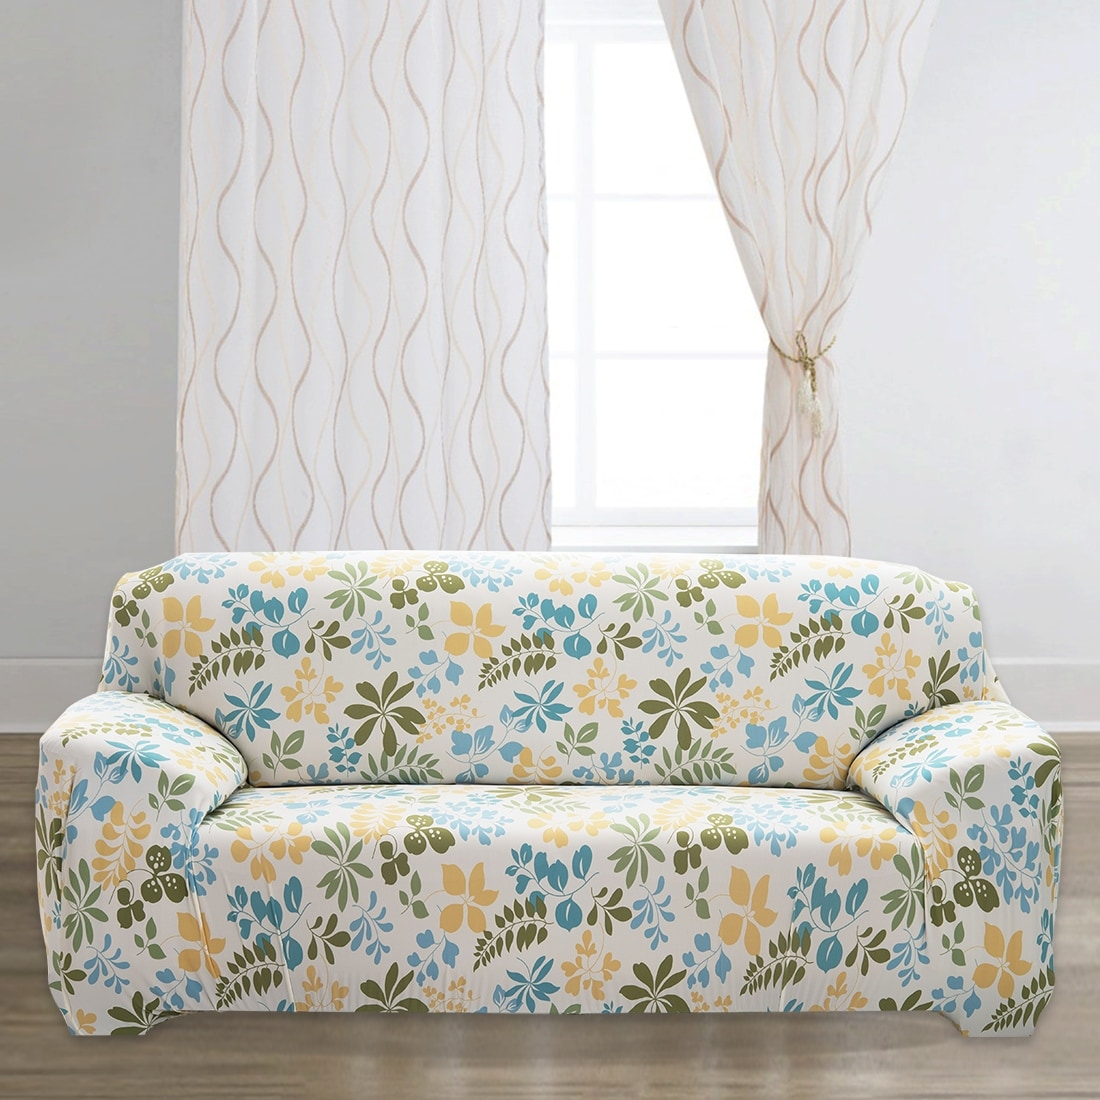 Unique Bargains Stretch 3 Seats Flower Pattern Sofa Cover Slipcovers Couch Protector Beige 74 90